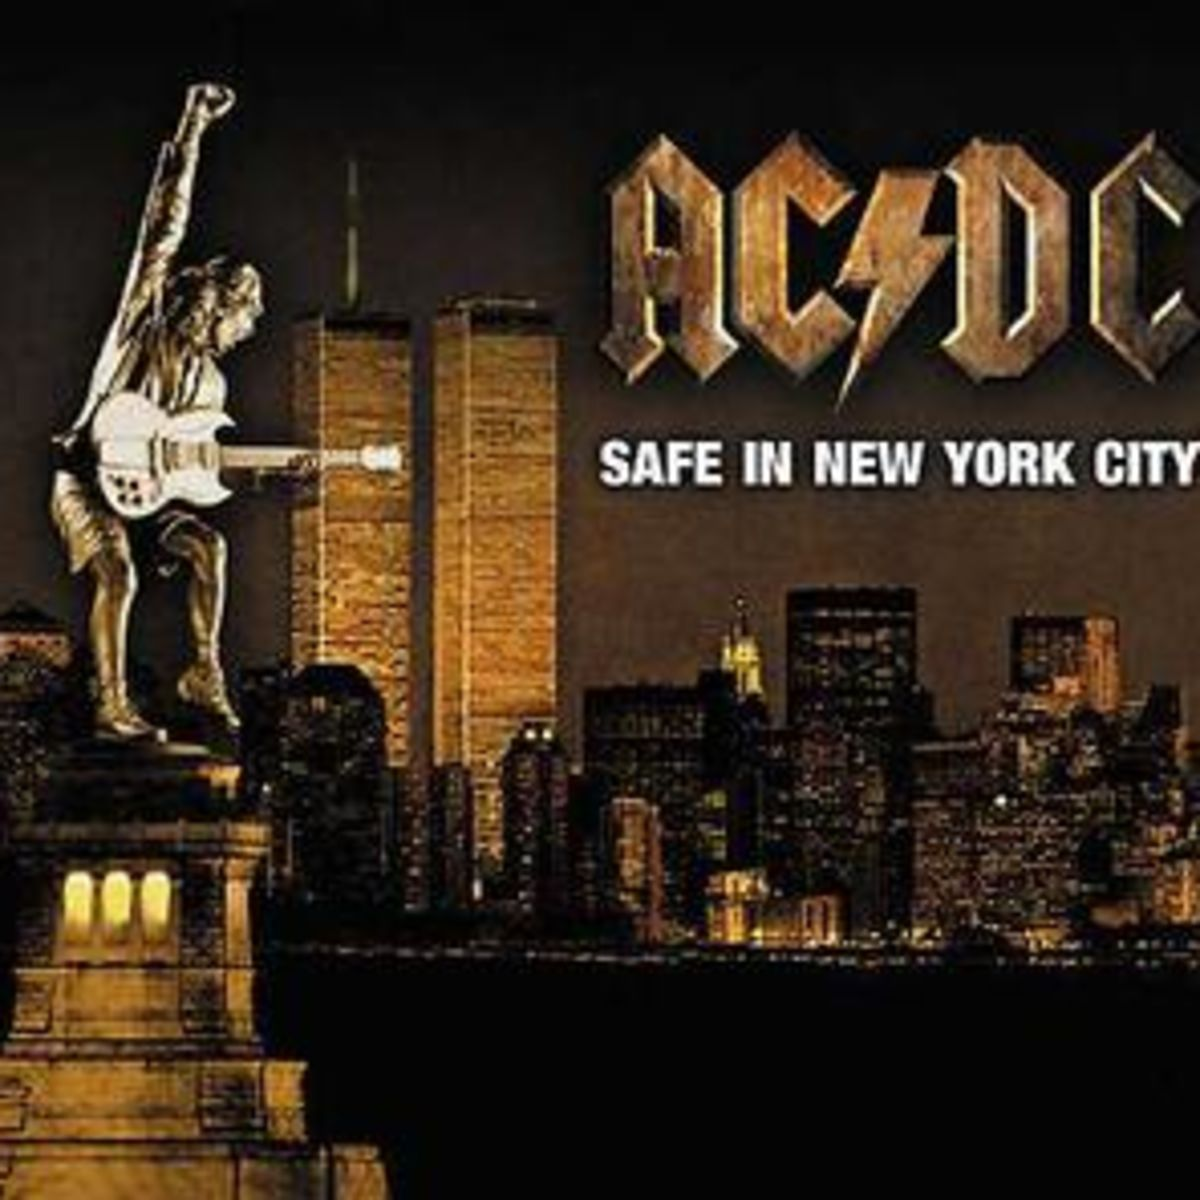 AC/DC: I feel safe in New York City